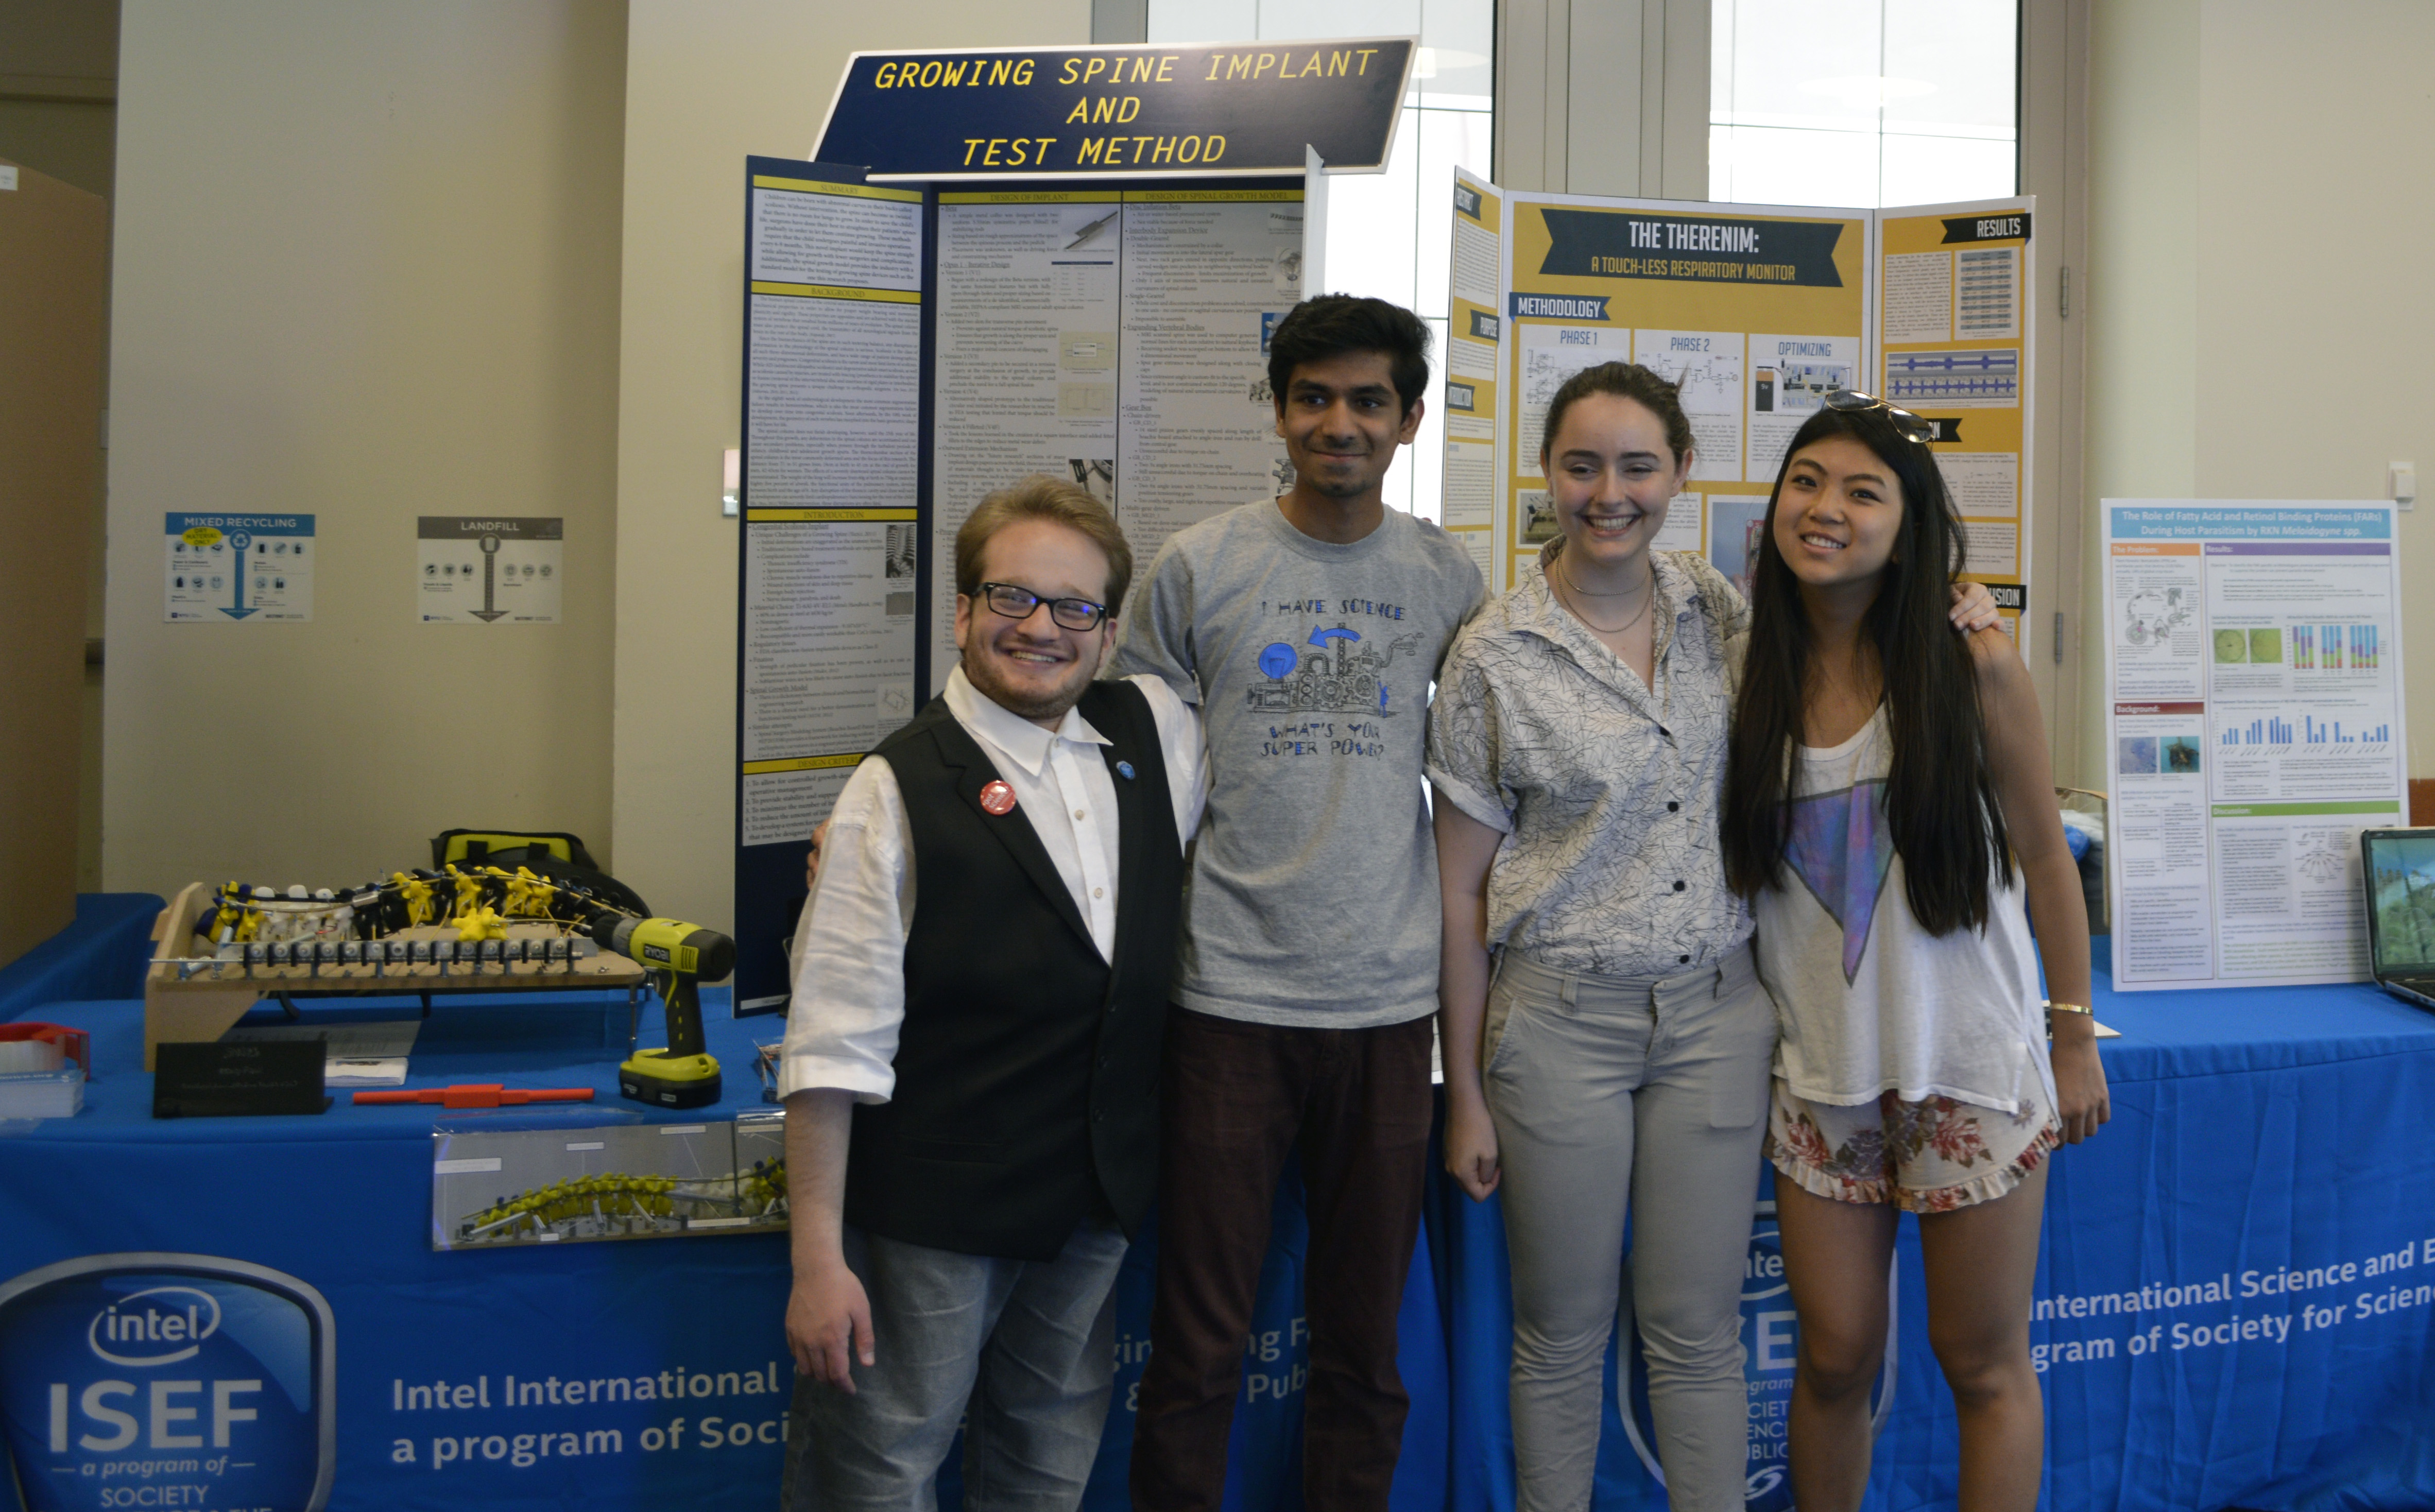 Society alumni Harry Paul, Eswar Anandapadmanaban, Kalia Firester, and Tiffany Sun were invited to present their research at the World Science Festival in New York.